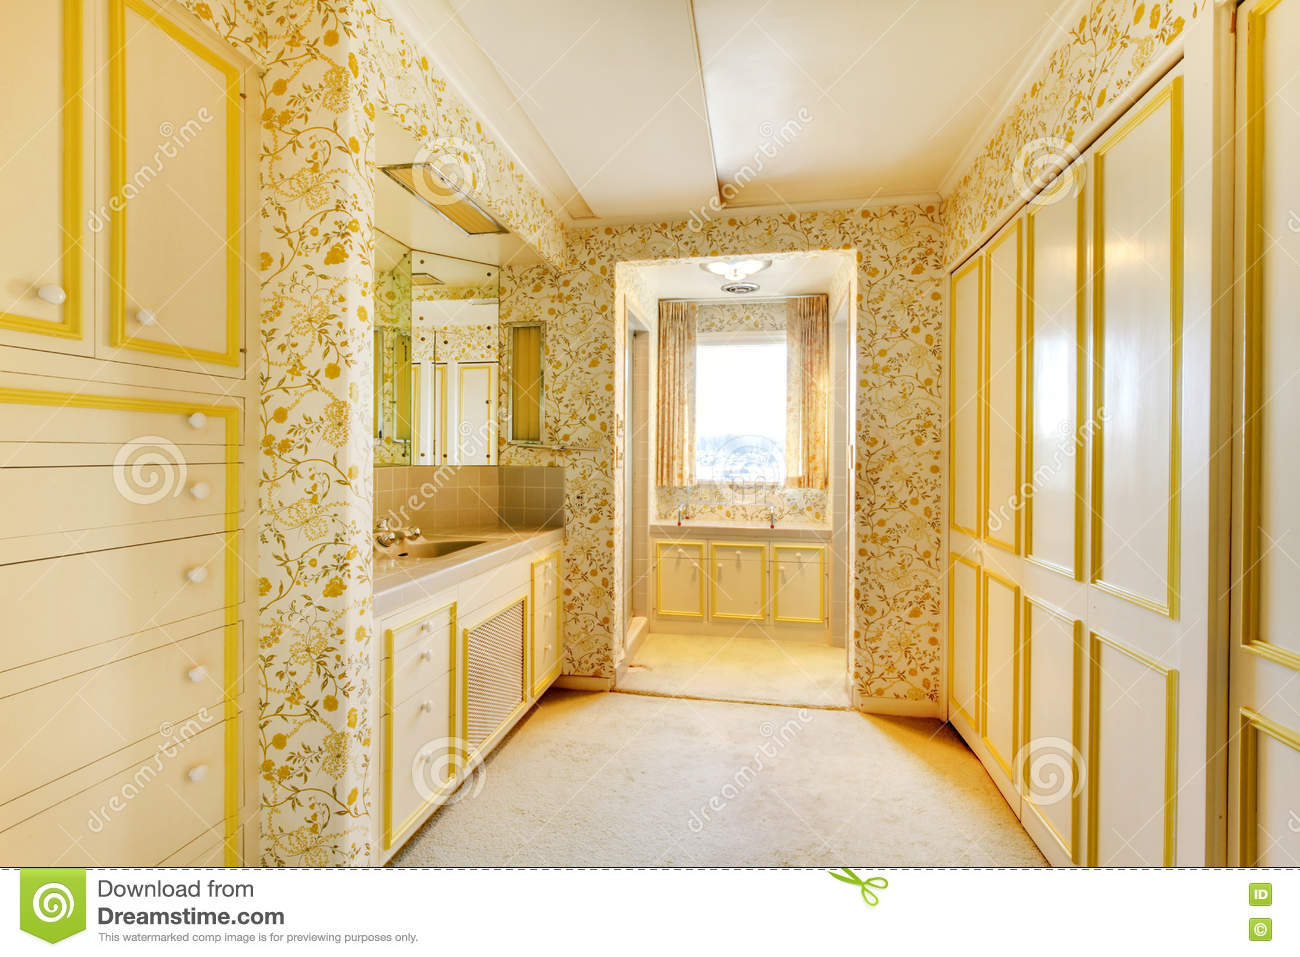 Old classic american house antique bathroom interior with for Old house classics